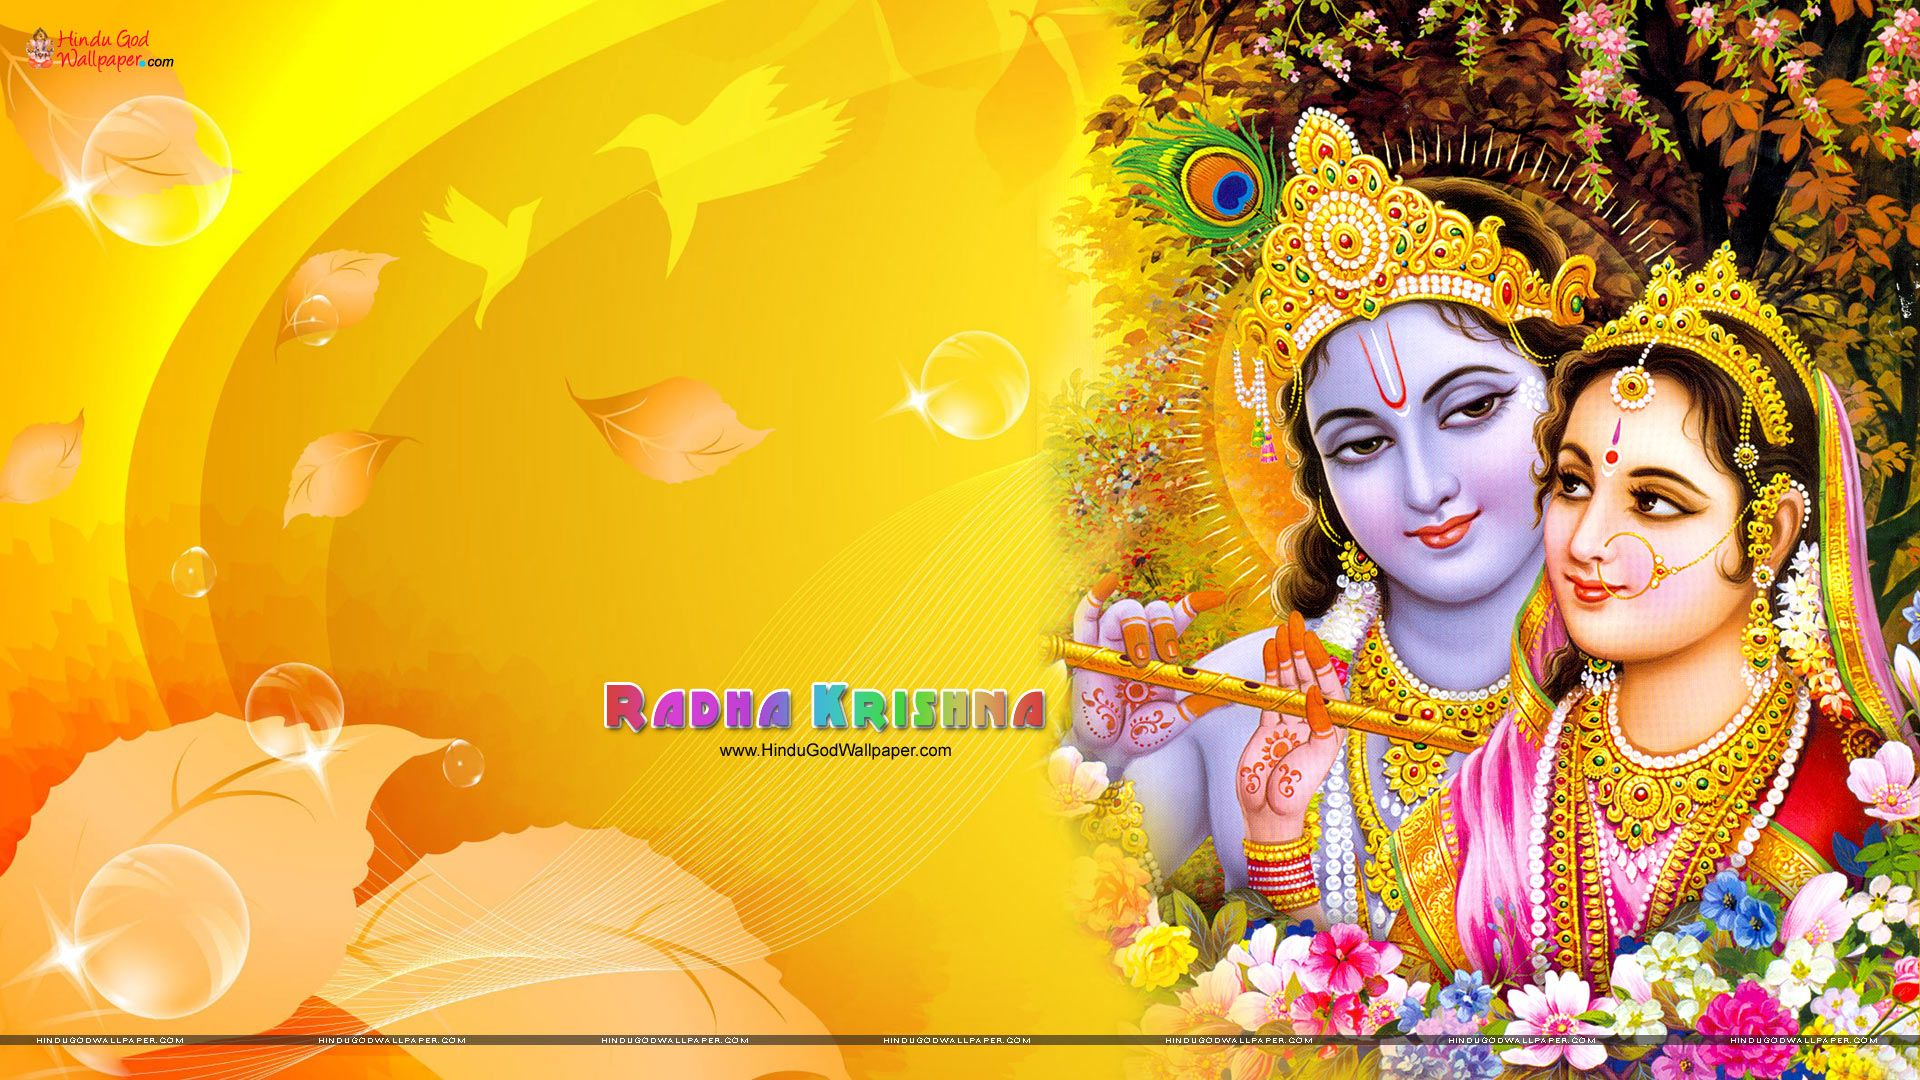 Radha Krishna Wallpaper Hd Full Size Download Radha Krishna